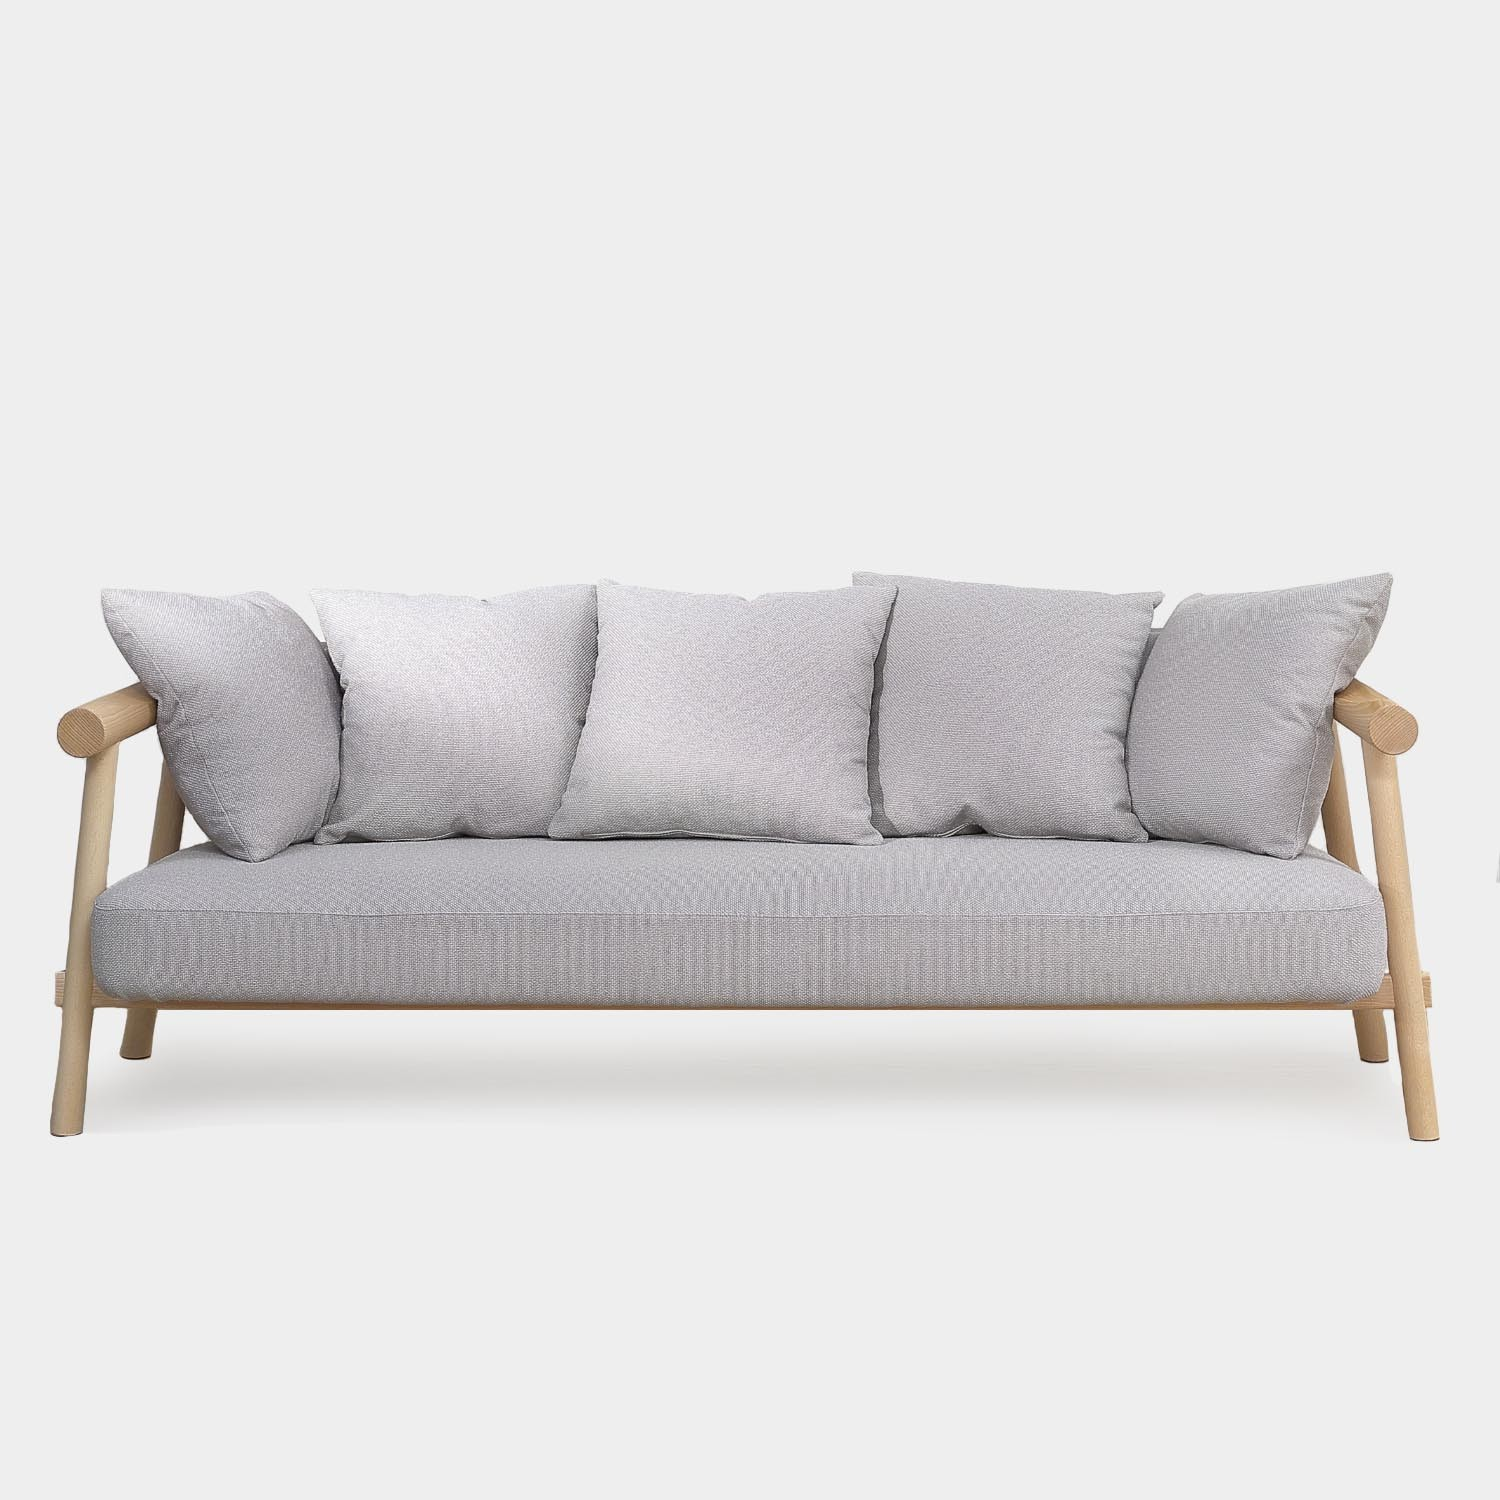 Altay Sofa, Natural Beechwood, Beige Textile Upholstery